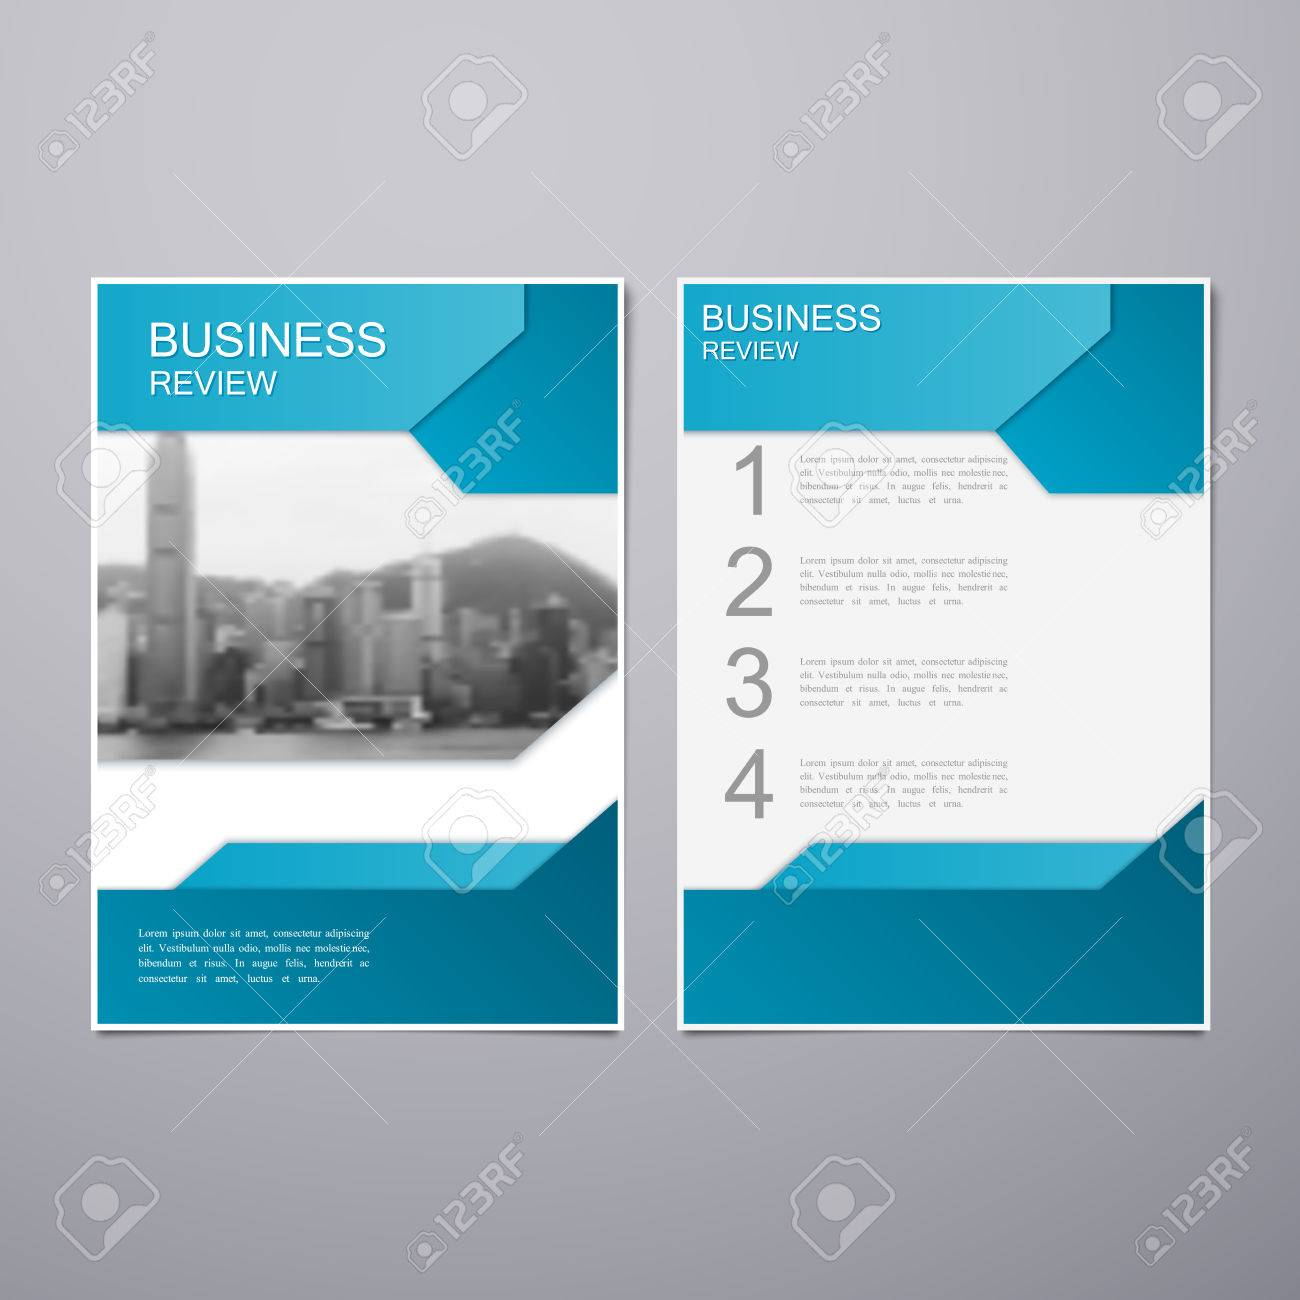 Business review leaflet brochure or flyer a4 size template design business review leaflet brochure or flyer a4 size template design book cover layout design cheaphphosting Images